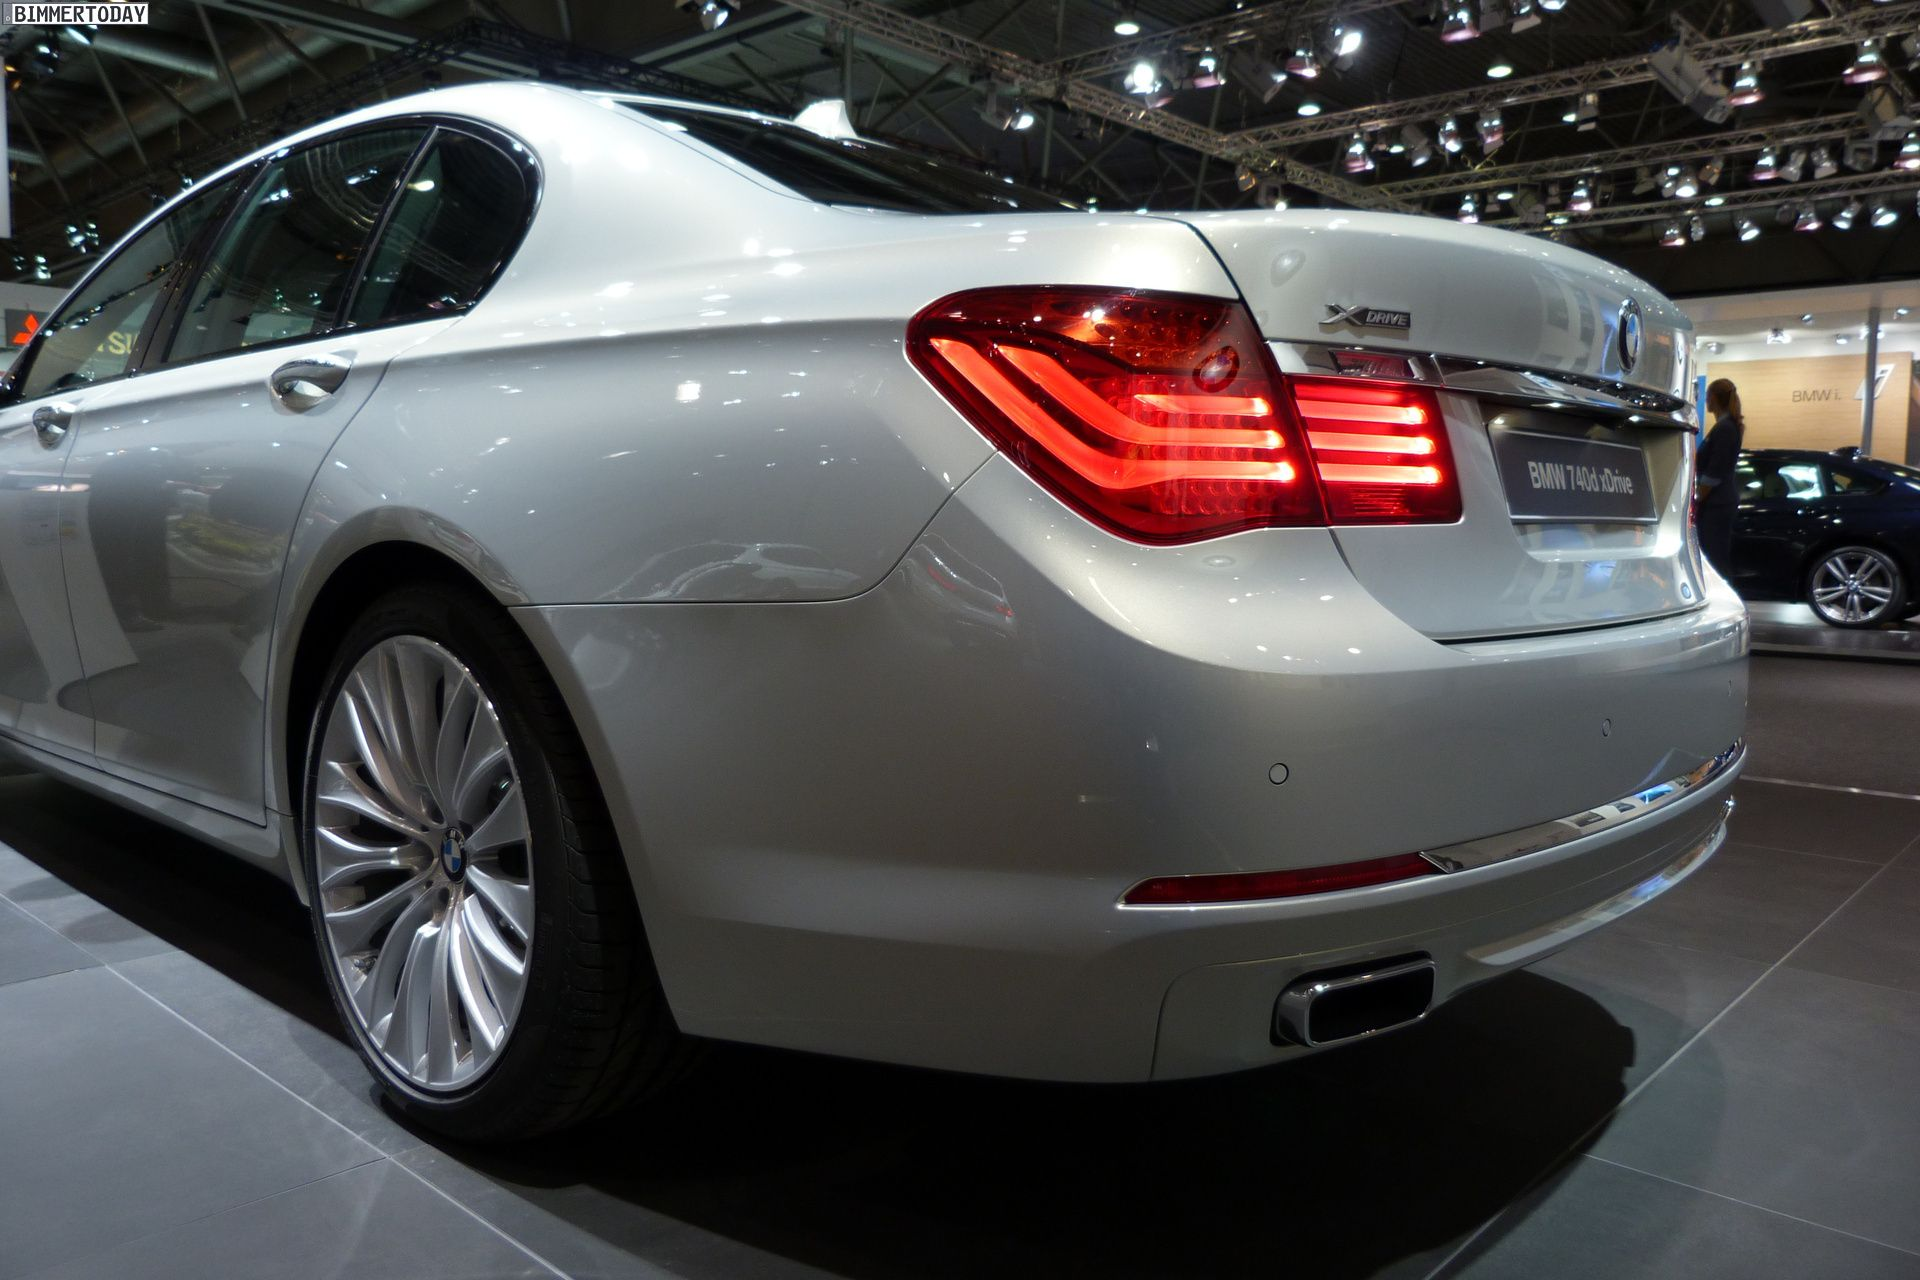 BMW of North America is recalling 92 units of 2013 2015 7 Series